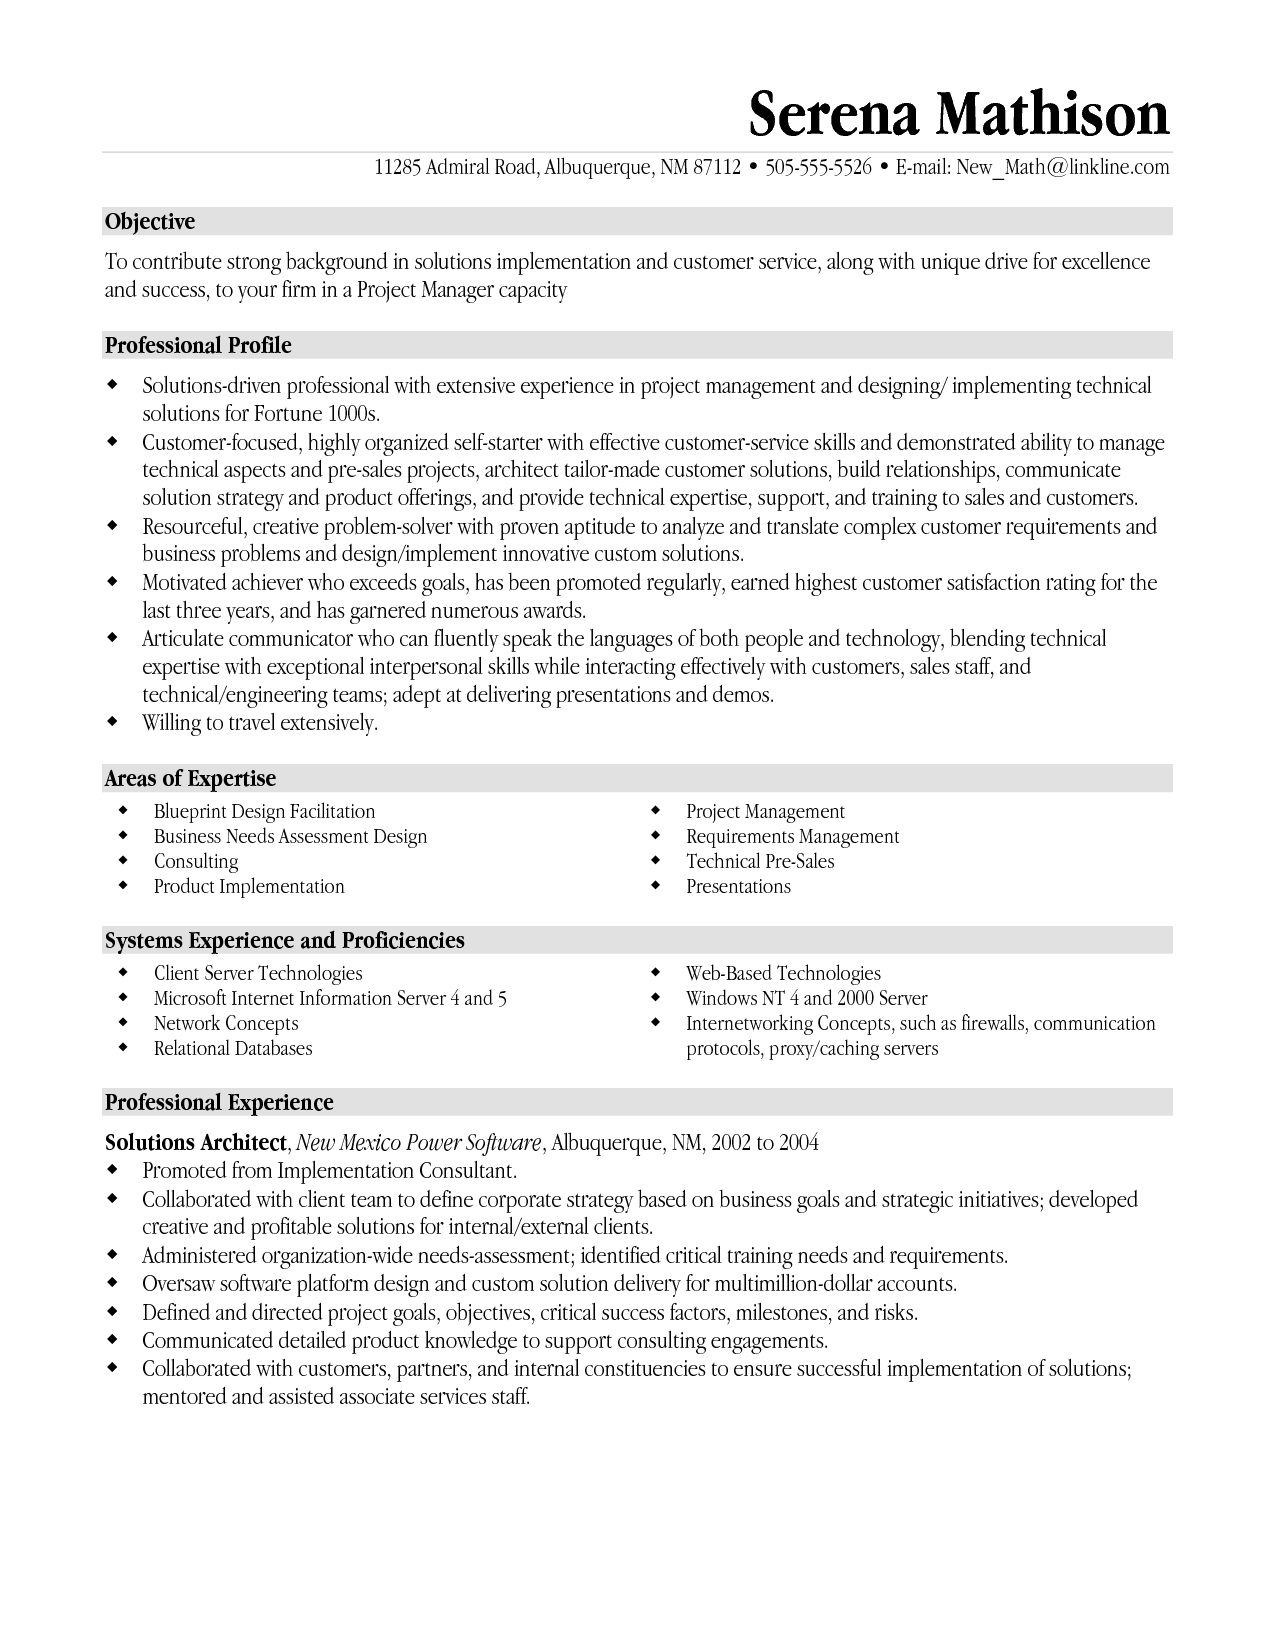 Technical Resume Tips Resume Templates Project Manager Project Management Resume